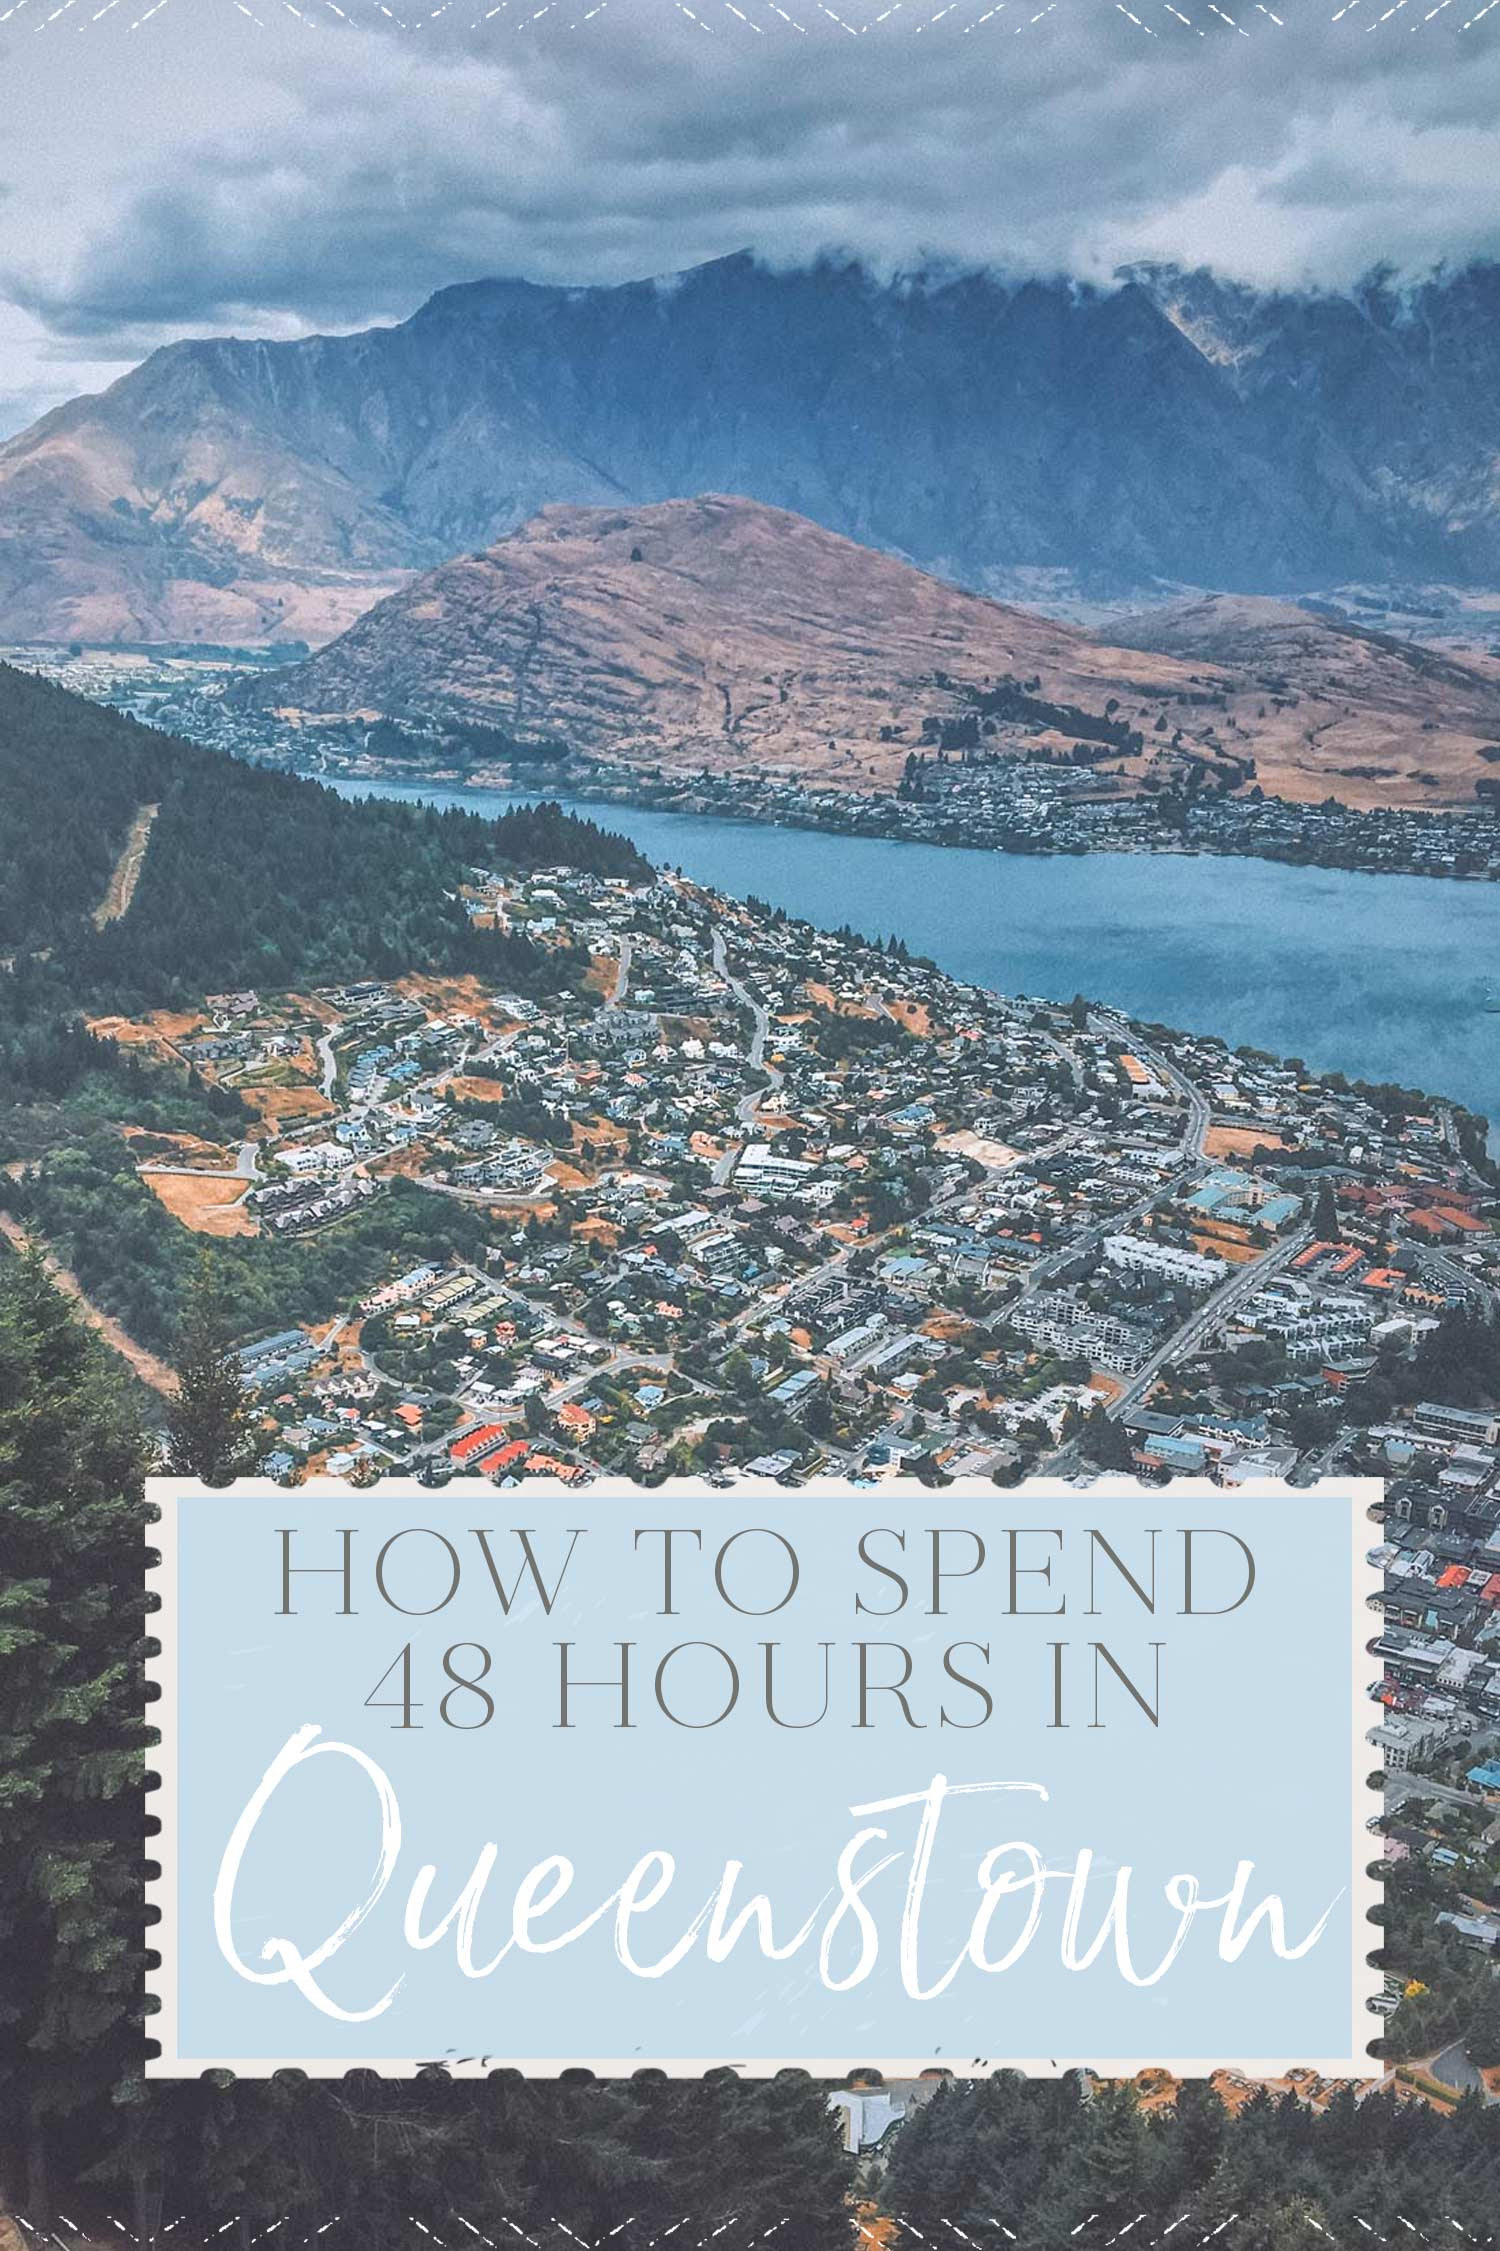 How to Spend 48 Hours in Queenstown